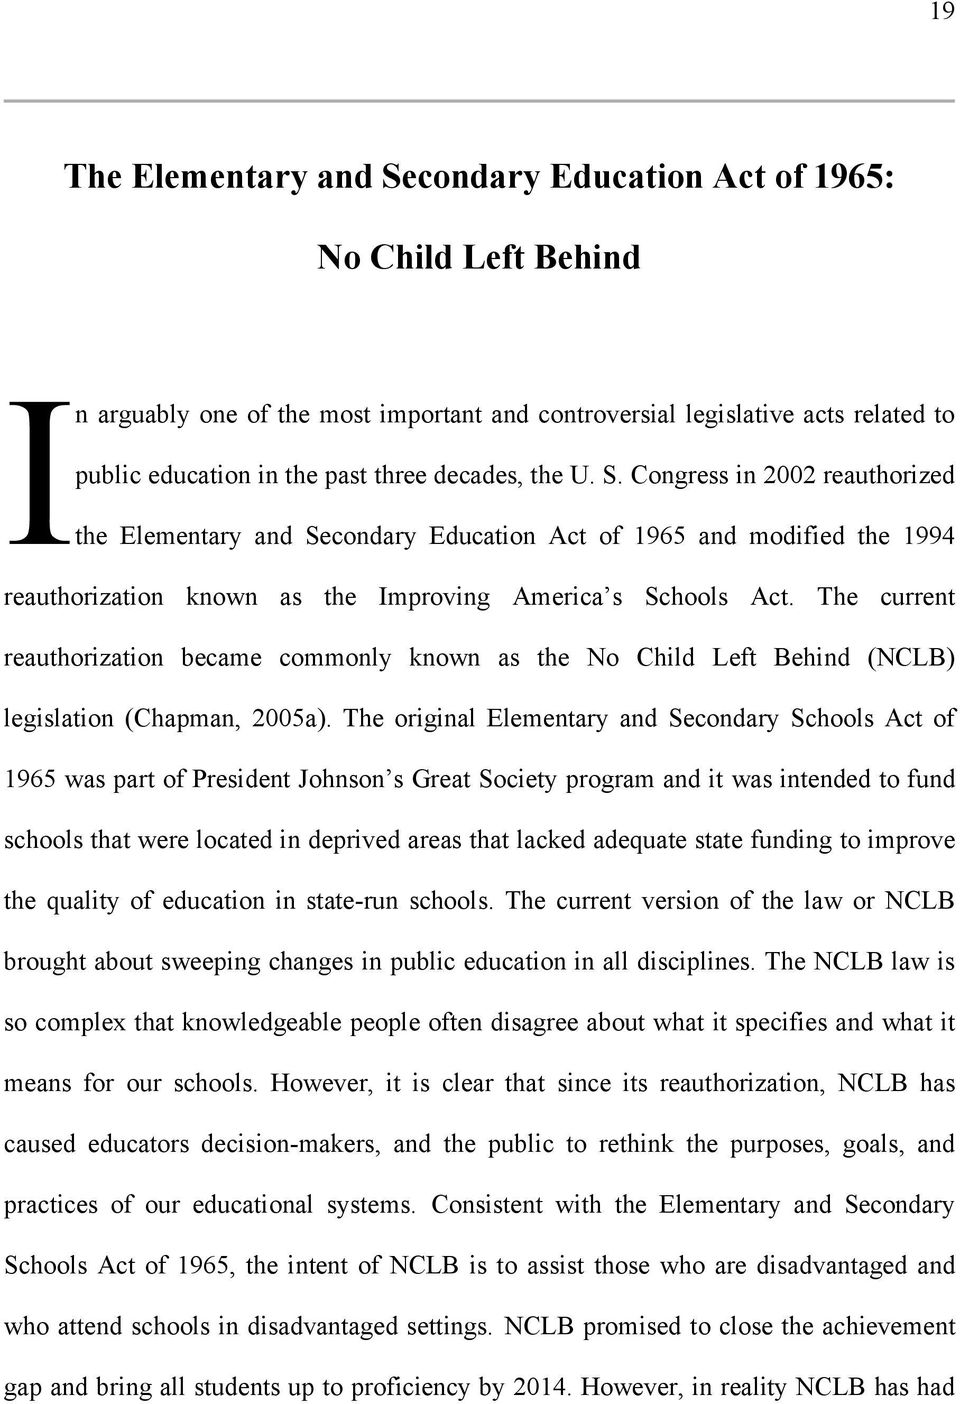 The current reauthorization became commonly known as the No Child Left Behind (NCLB) legislation (Chapman, 2005a).